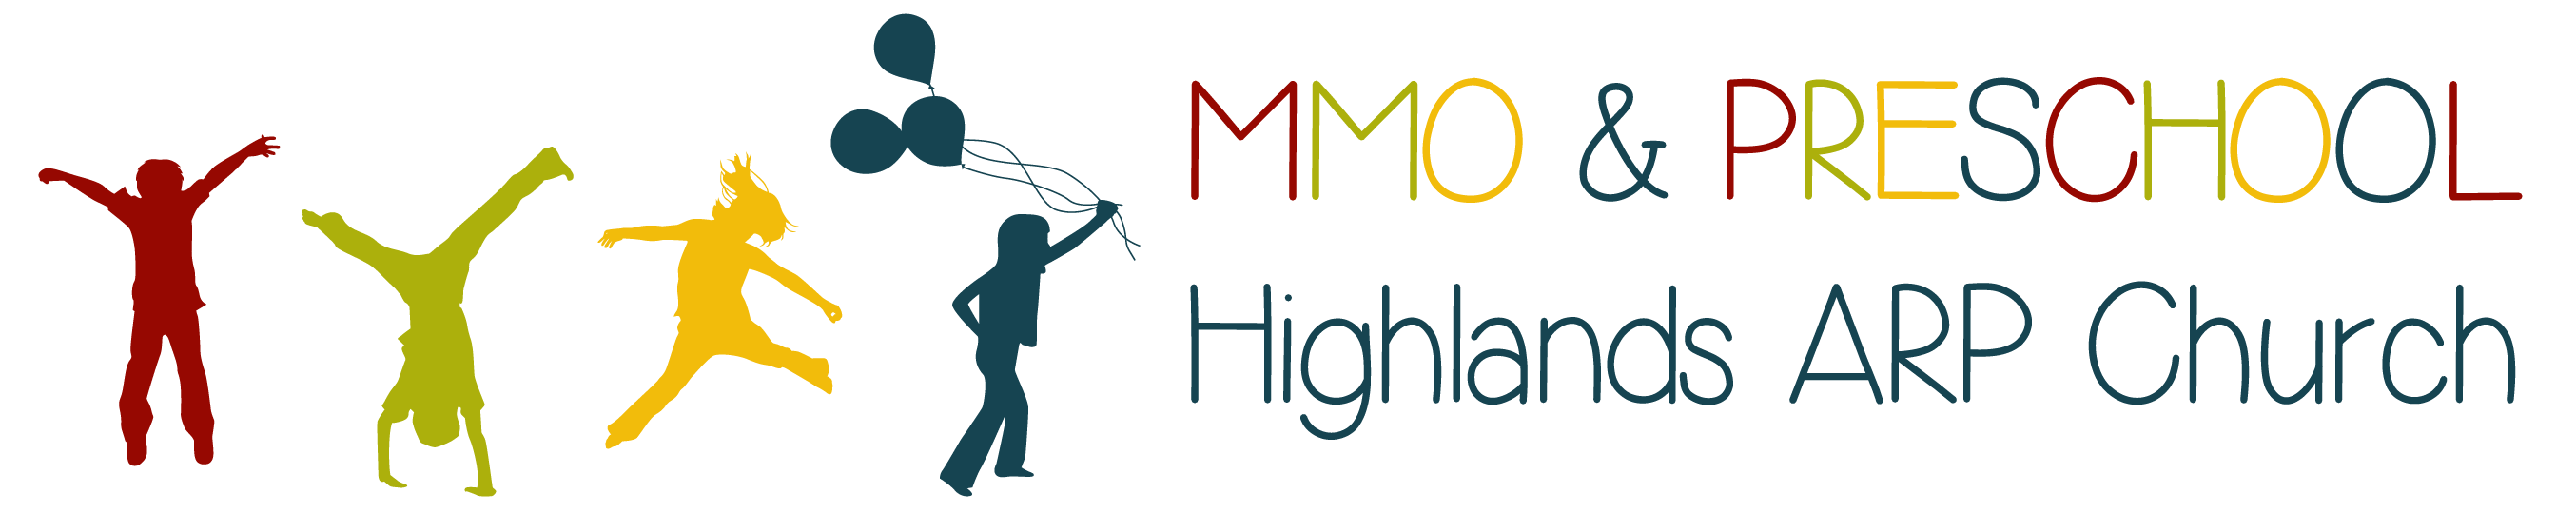 Highlands Preschool & MMO